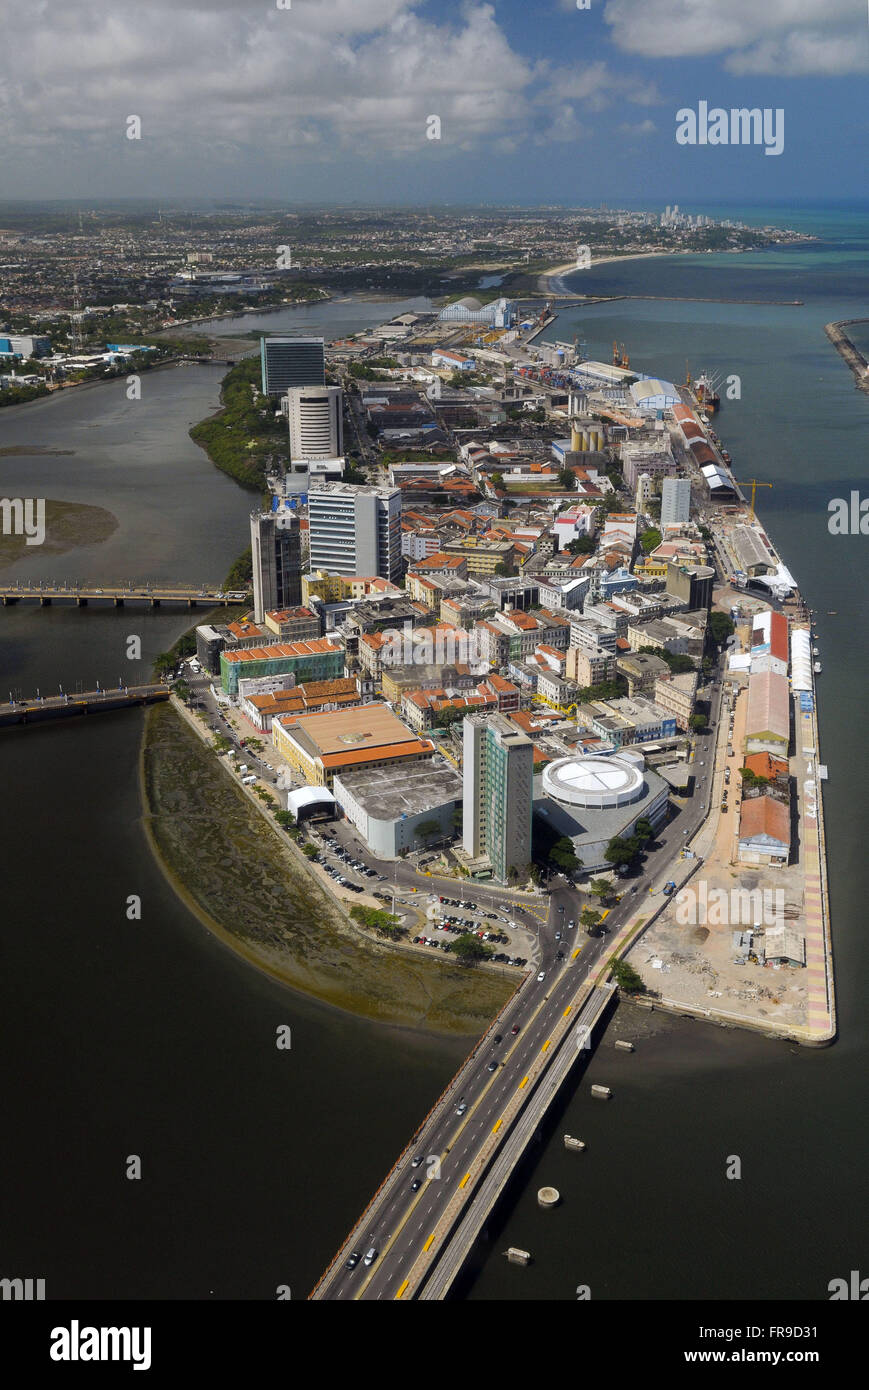 City Center - aerial view - Bairro do Recife - Stock Image